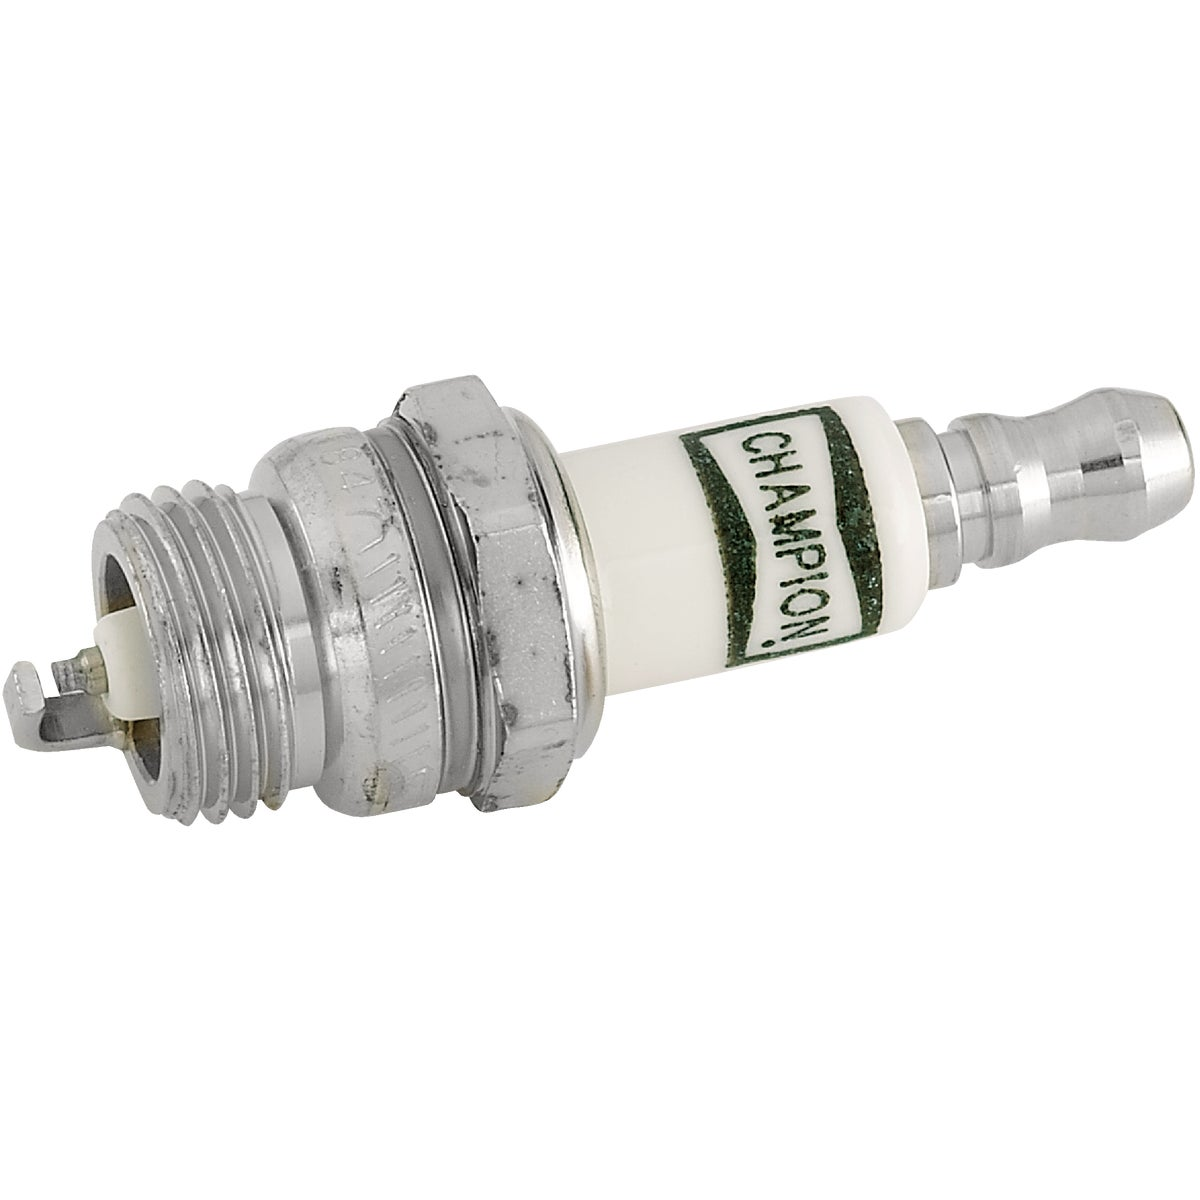 DJ8J EZ START SPARK PLUG - 5847 by Federal Mogul